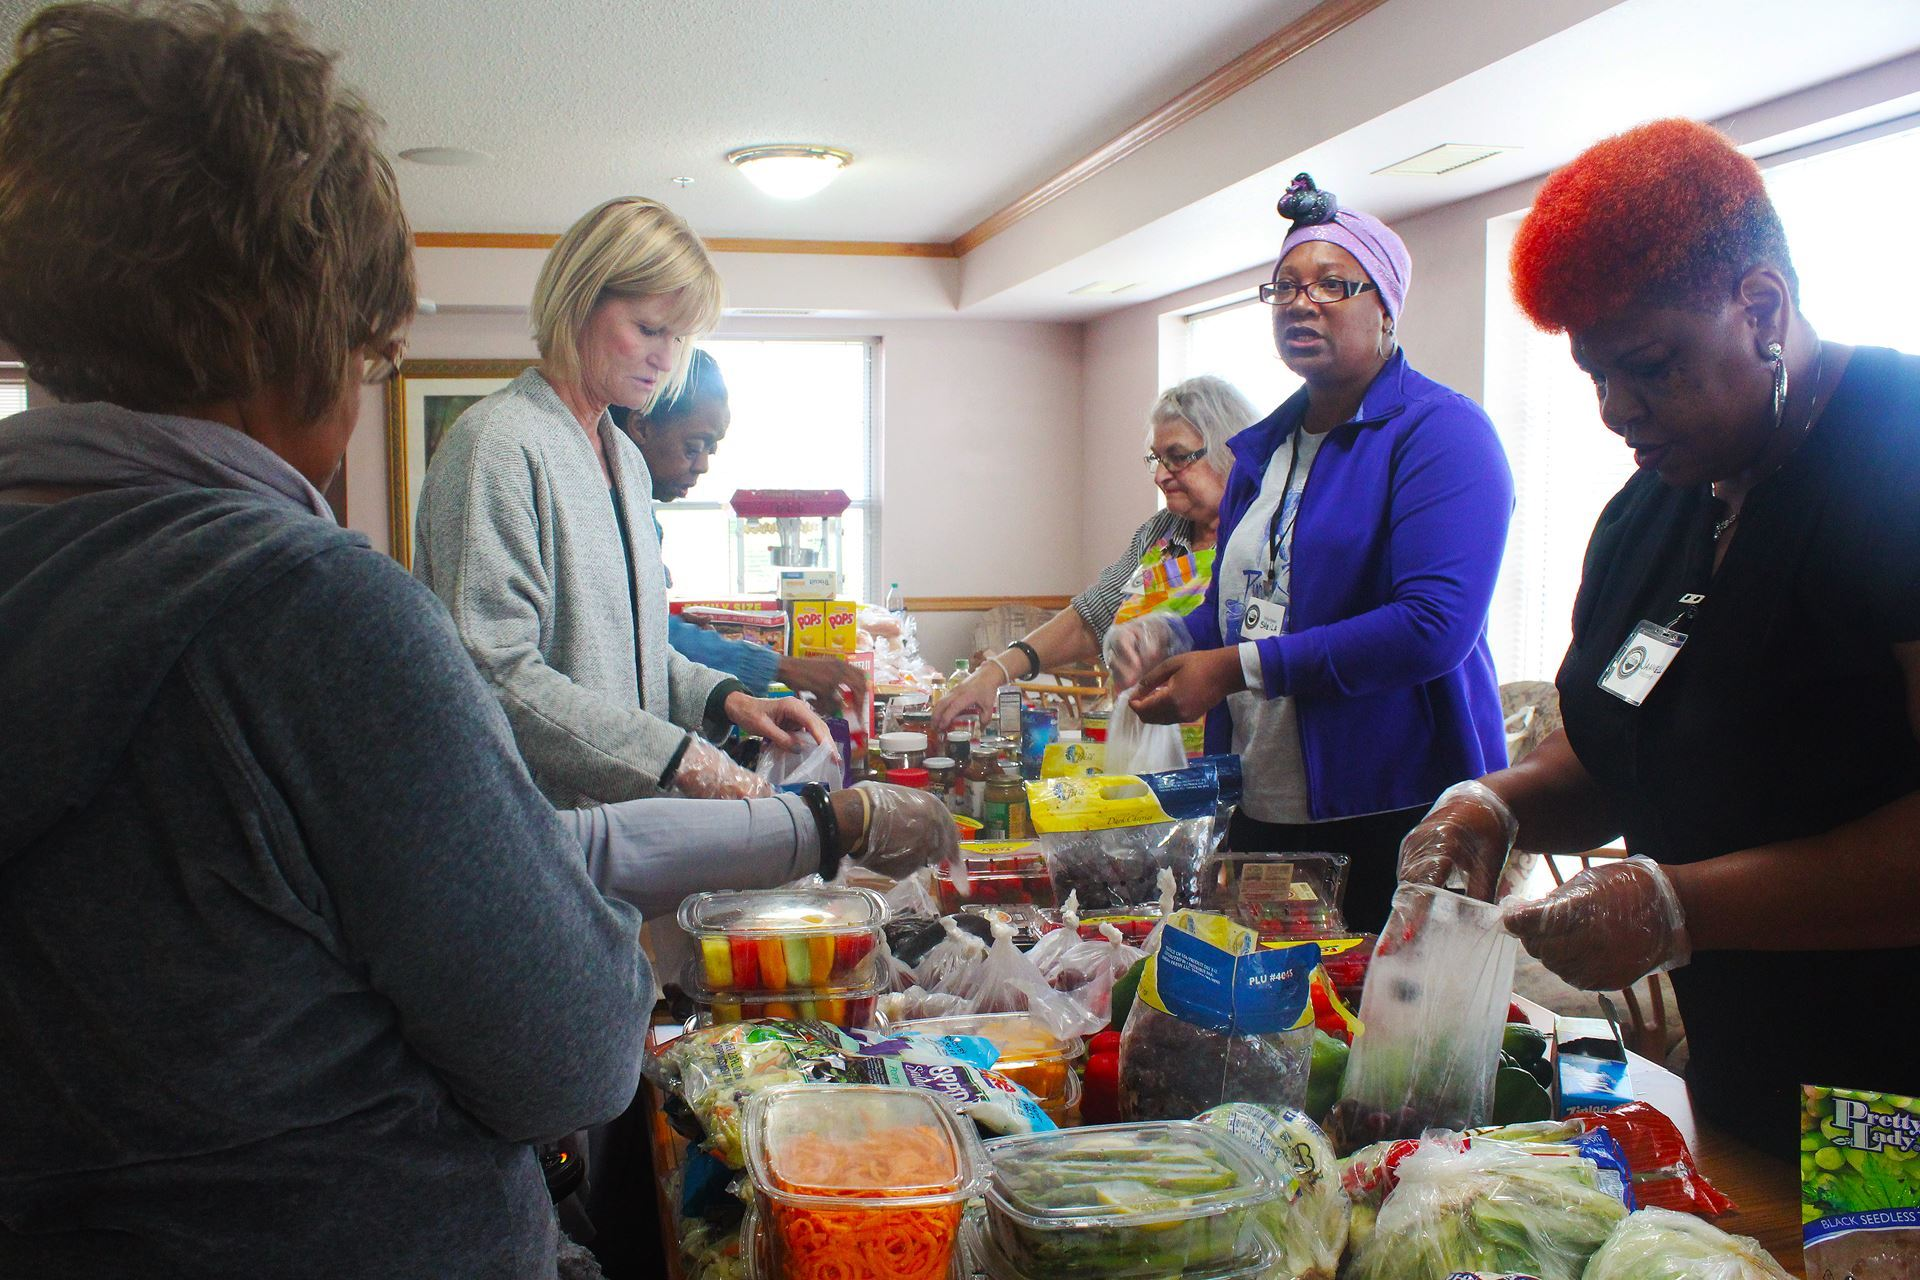 Photo of Kristine Martin and other volunteer distributing produce at a food shelf.